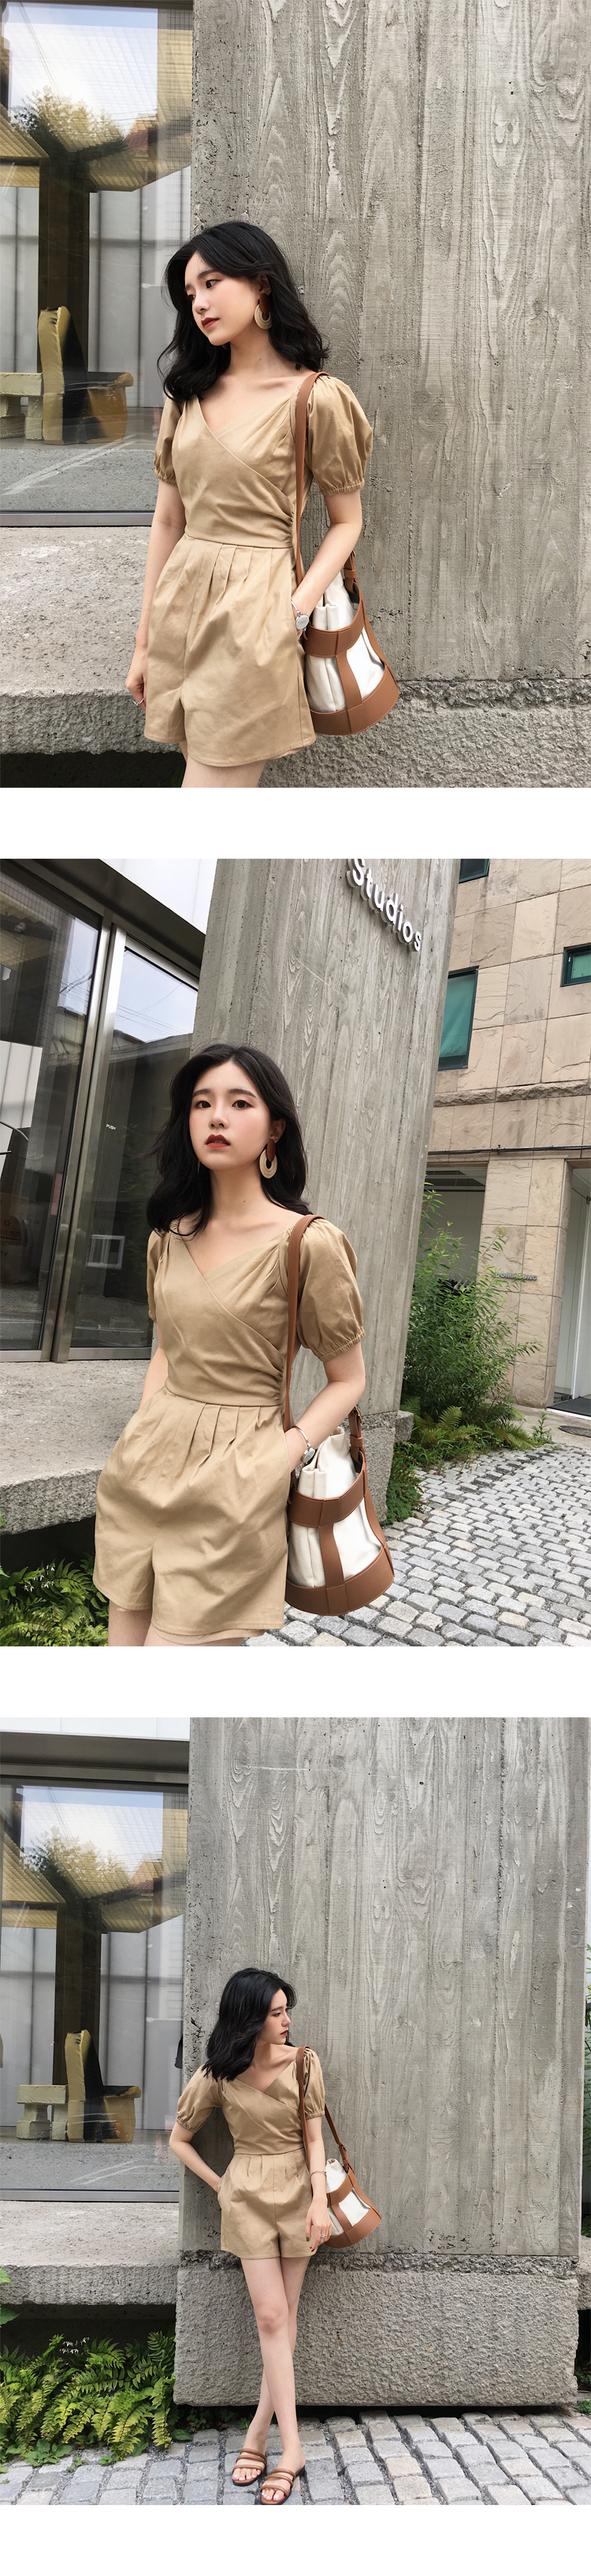 H969ac52bf4cb40bfbdbaeabb4280e3c3X - LLZACOOSH Runway Women Solid Rompers Summer Short Puff Sleeve Casual Playsuits Holiday Short Beach Holiday Jumpsuits